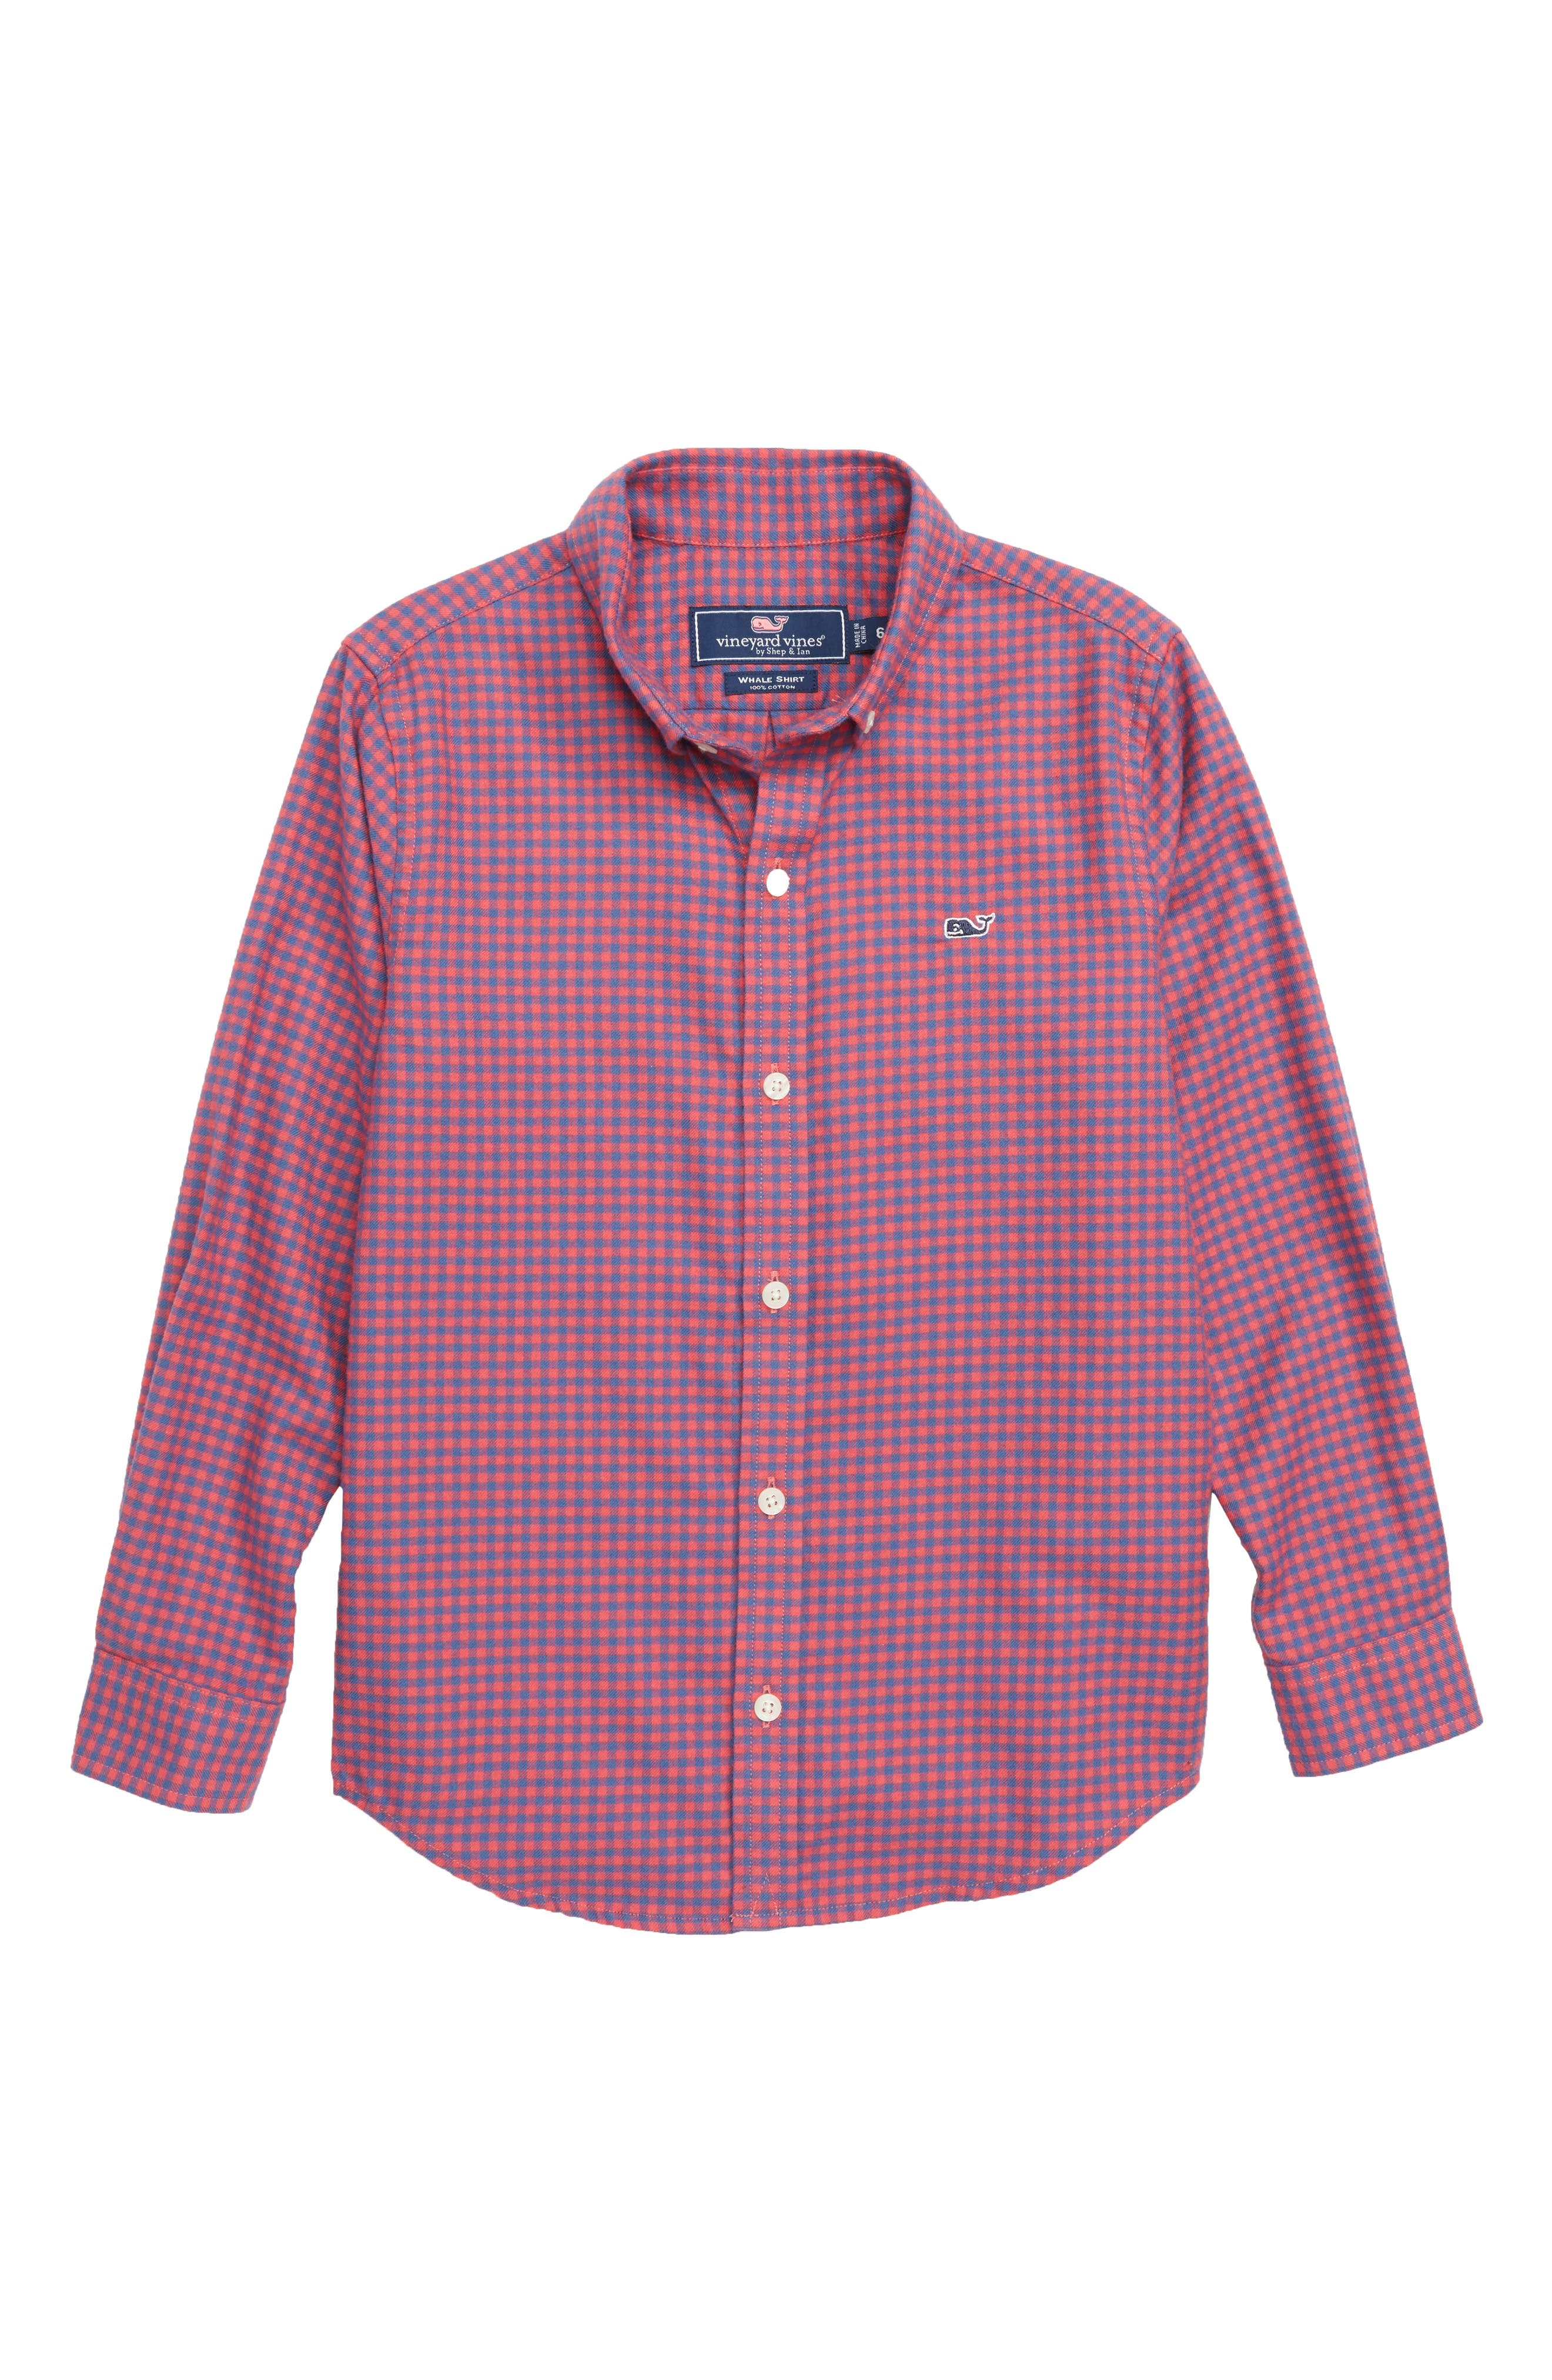 Trade Winds Flannel Whale Shirt,                         Main,                         color, SAILORS RED